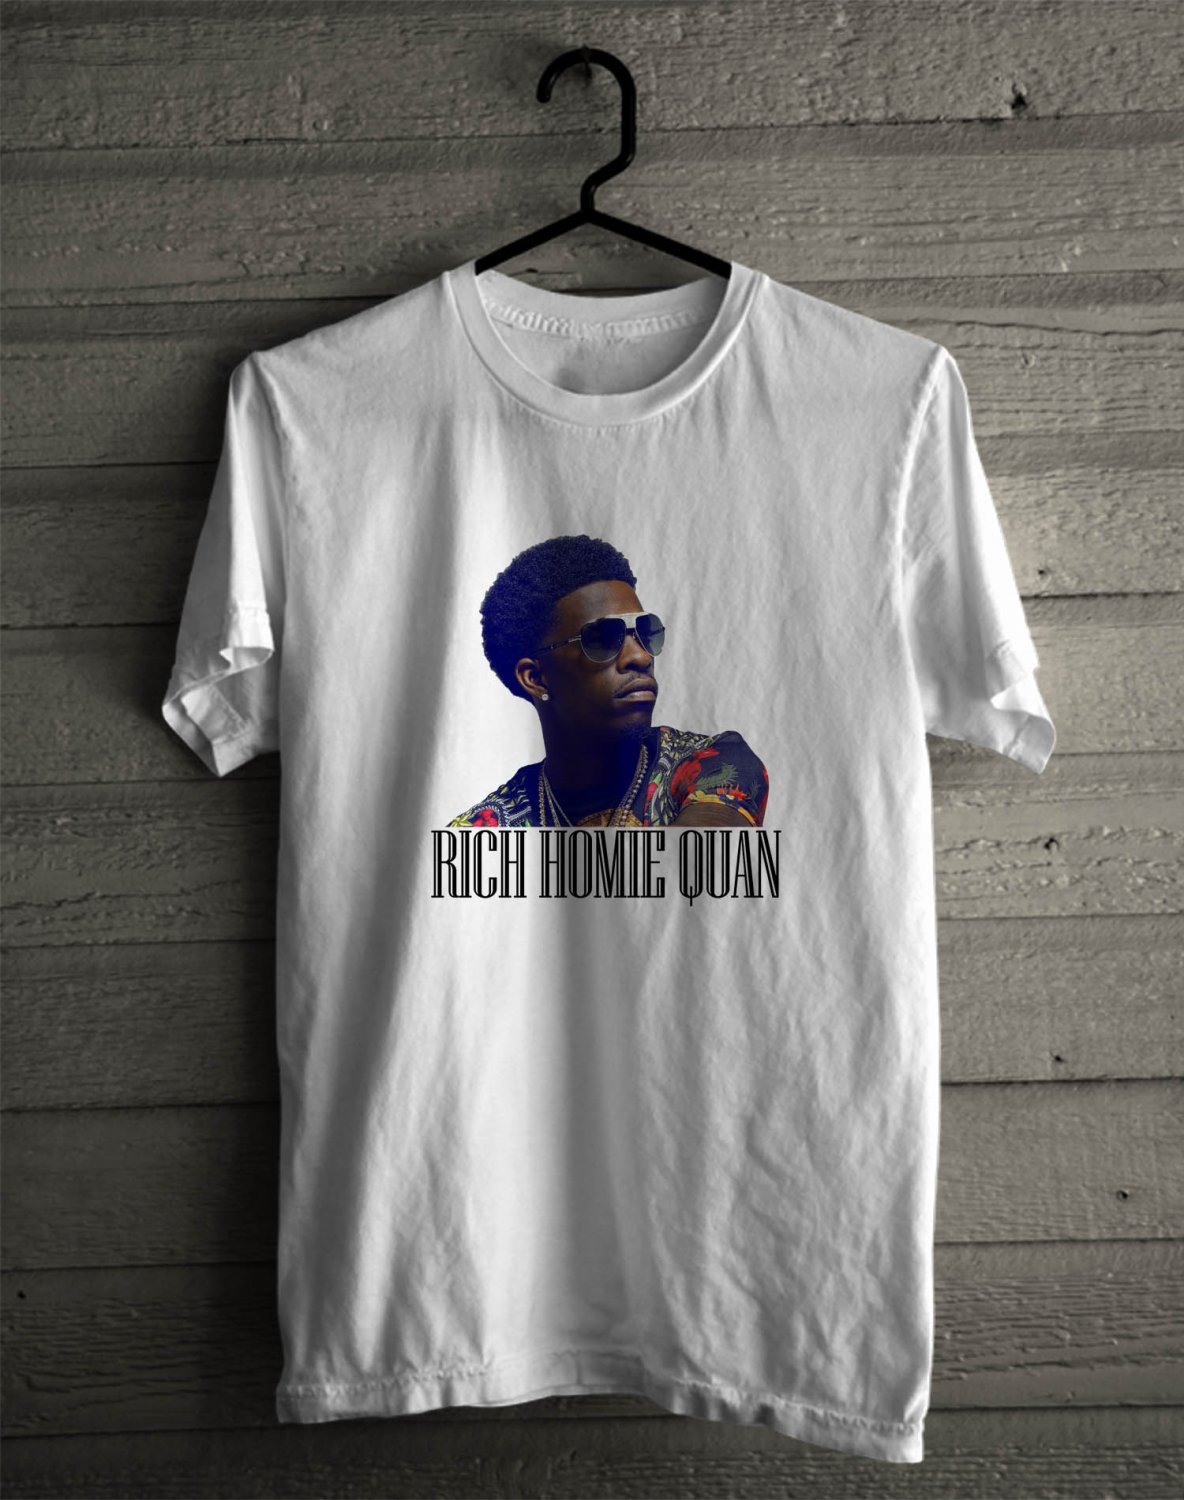 Rich Homie Quan Back to Basic Tour 2017 White Tee's Front Side by Complexart